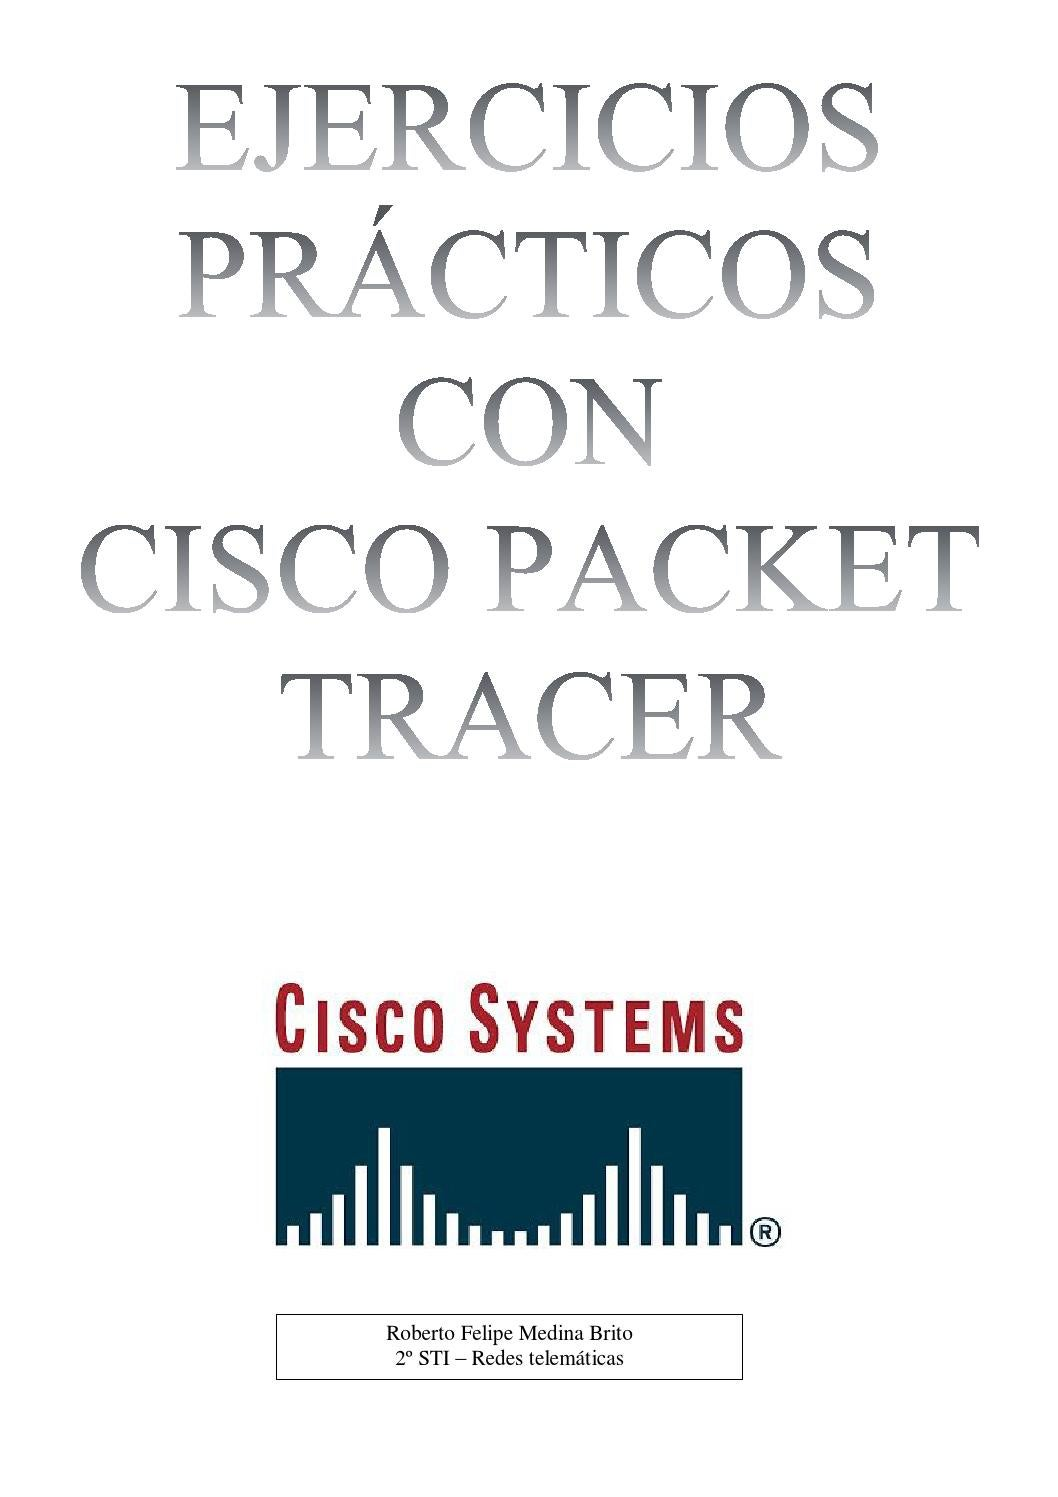 Libro Cisco Ejercicios Prácticos De Redes De Datos Con Cisco Packet Tracer